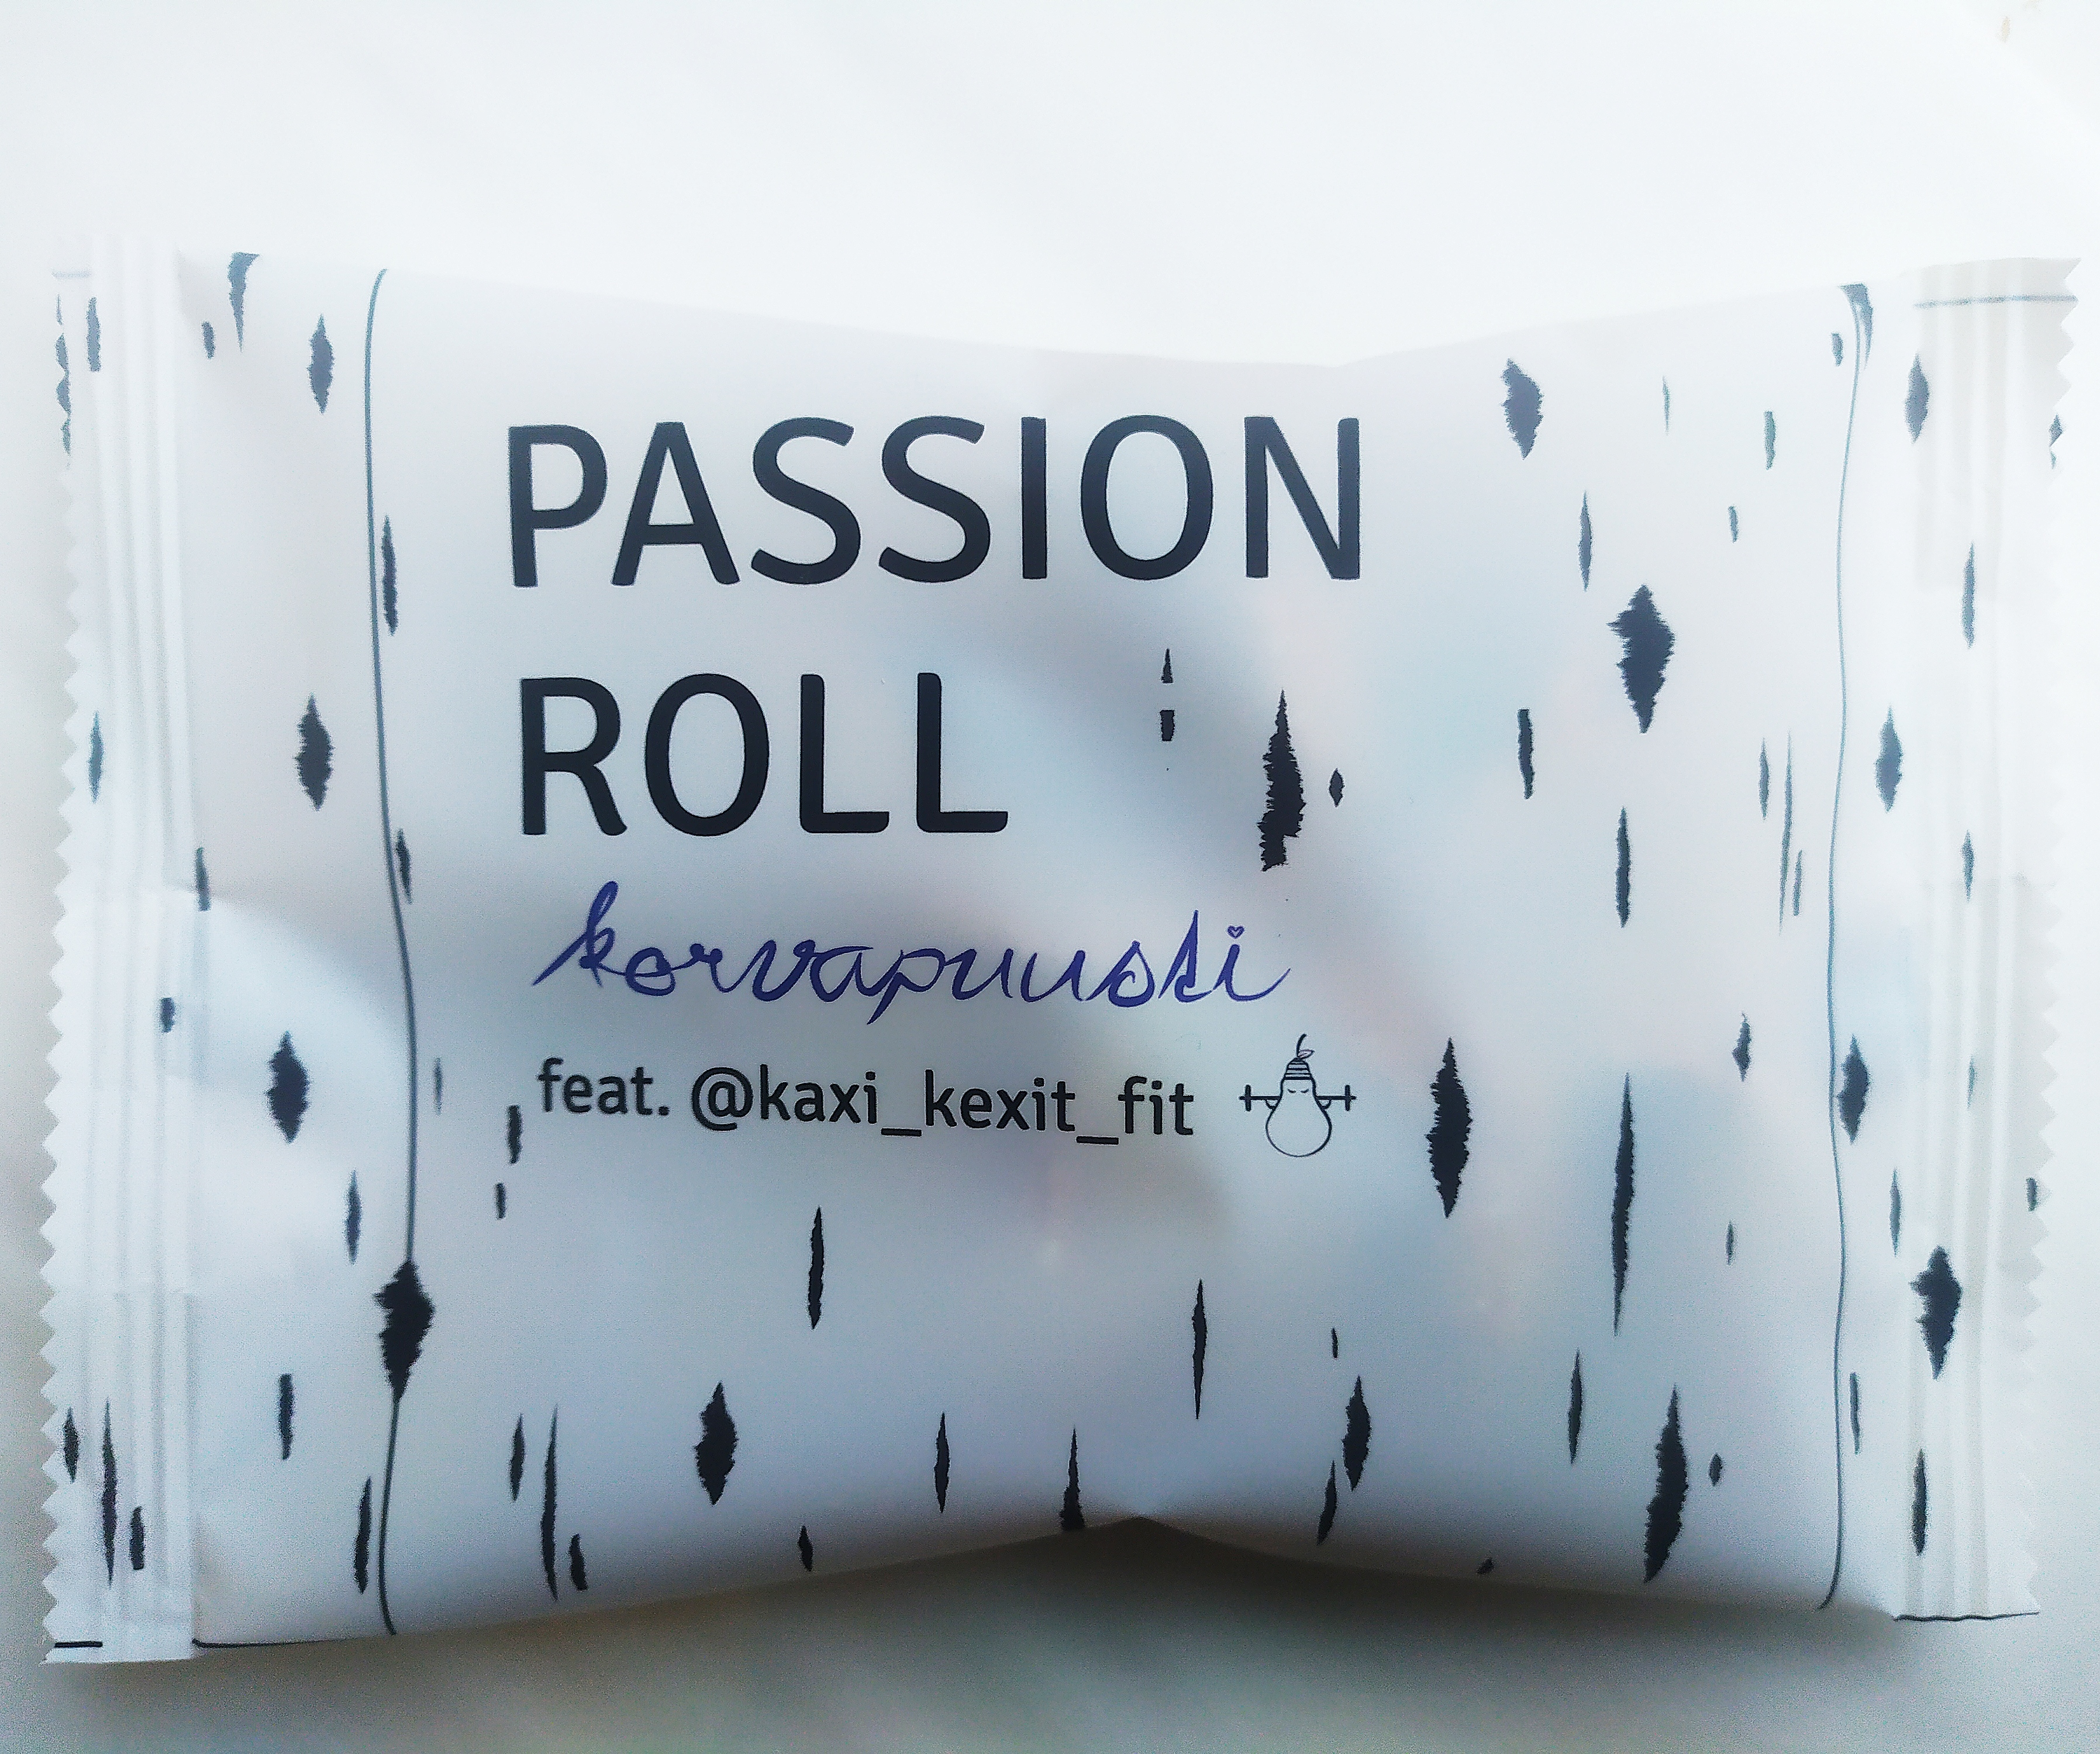 PASSION ROLL korvapuusti